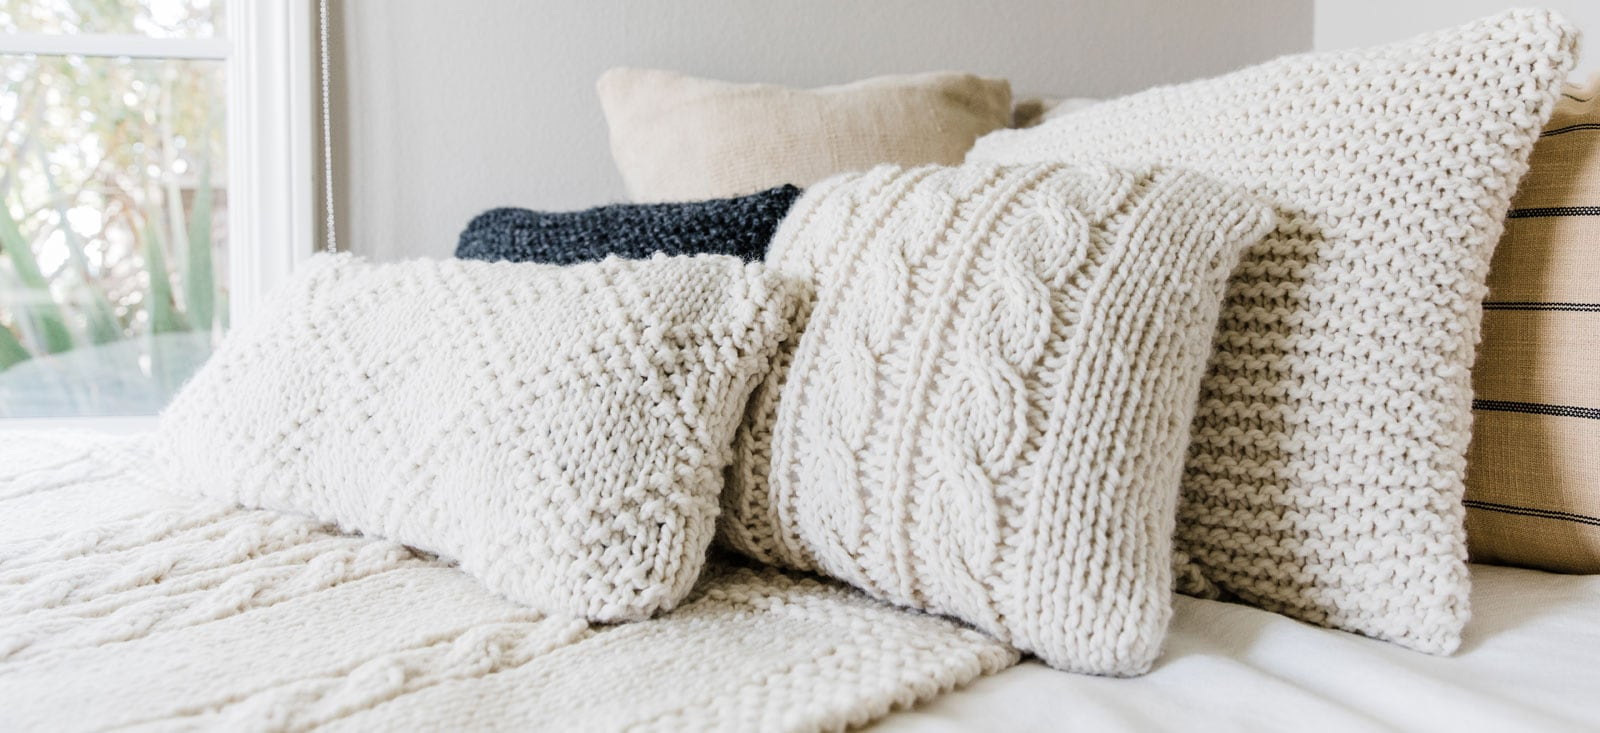 Cozy Knitted Pillows - Alison Abbey